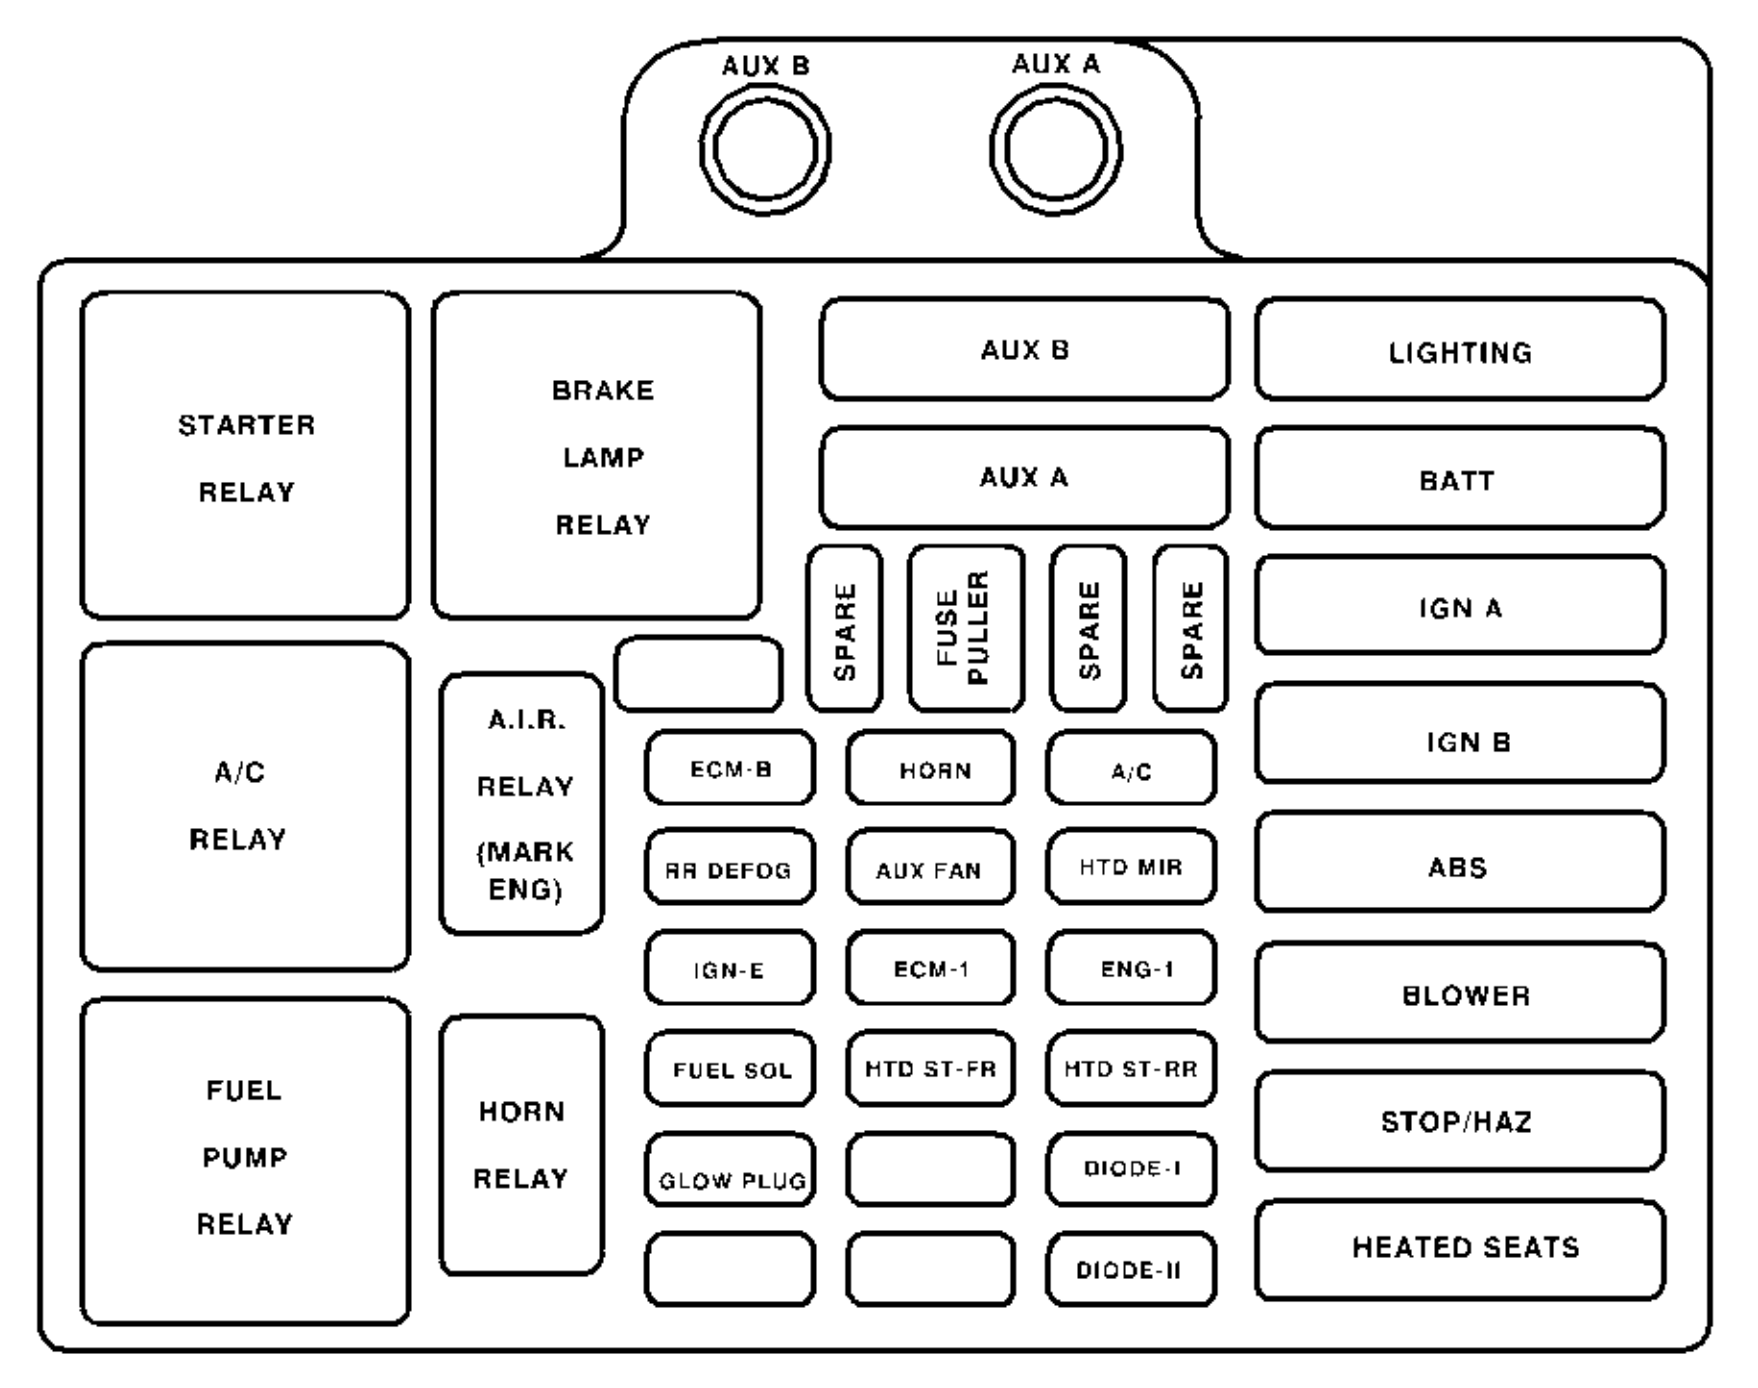 hight resolution of 1997 tahoe fuse box wire management wiring diagram 97 chevy tahoe under hood fuse box